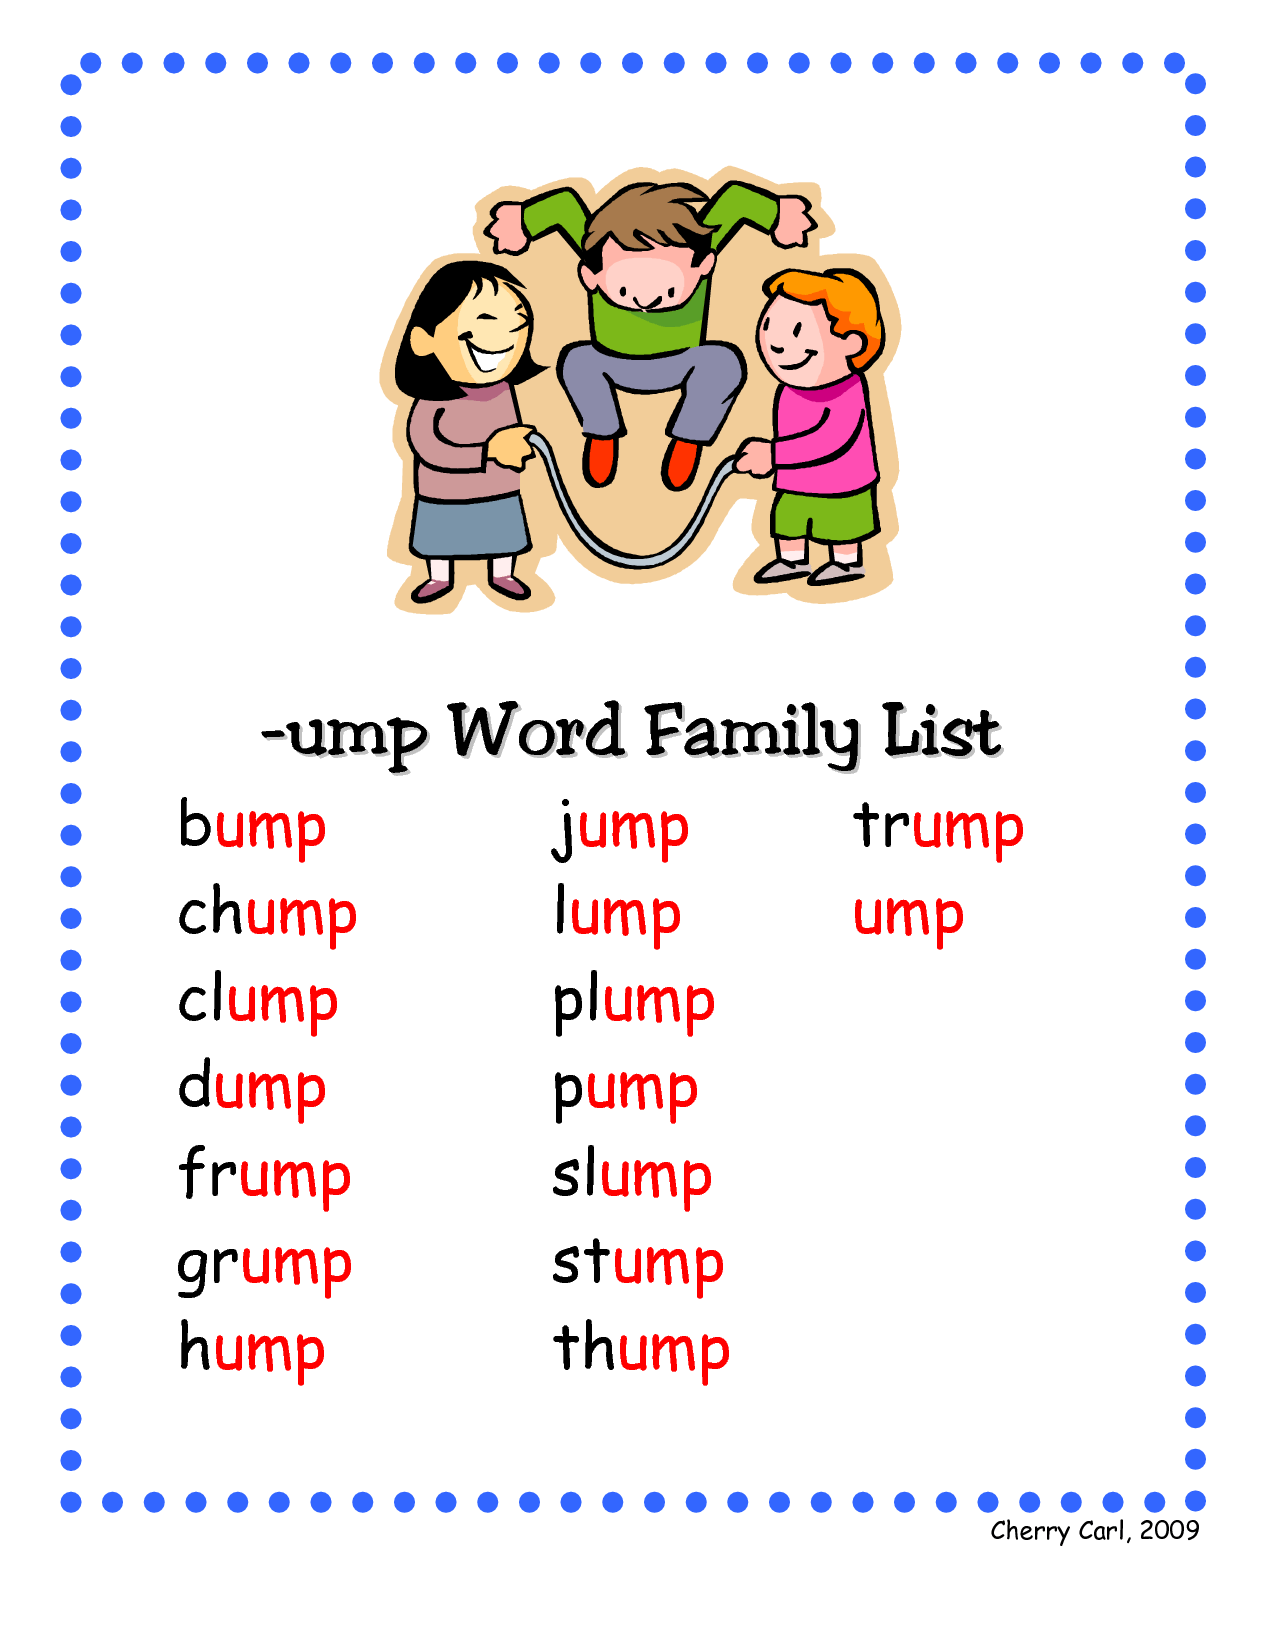 Ump Word Family List